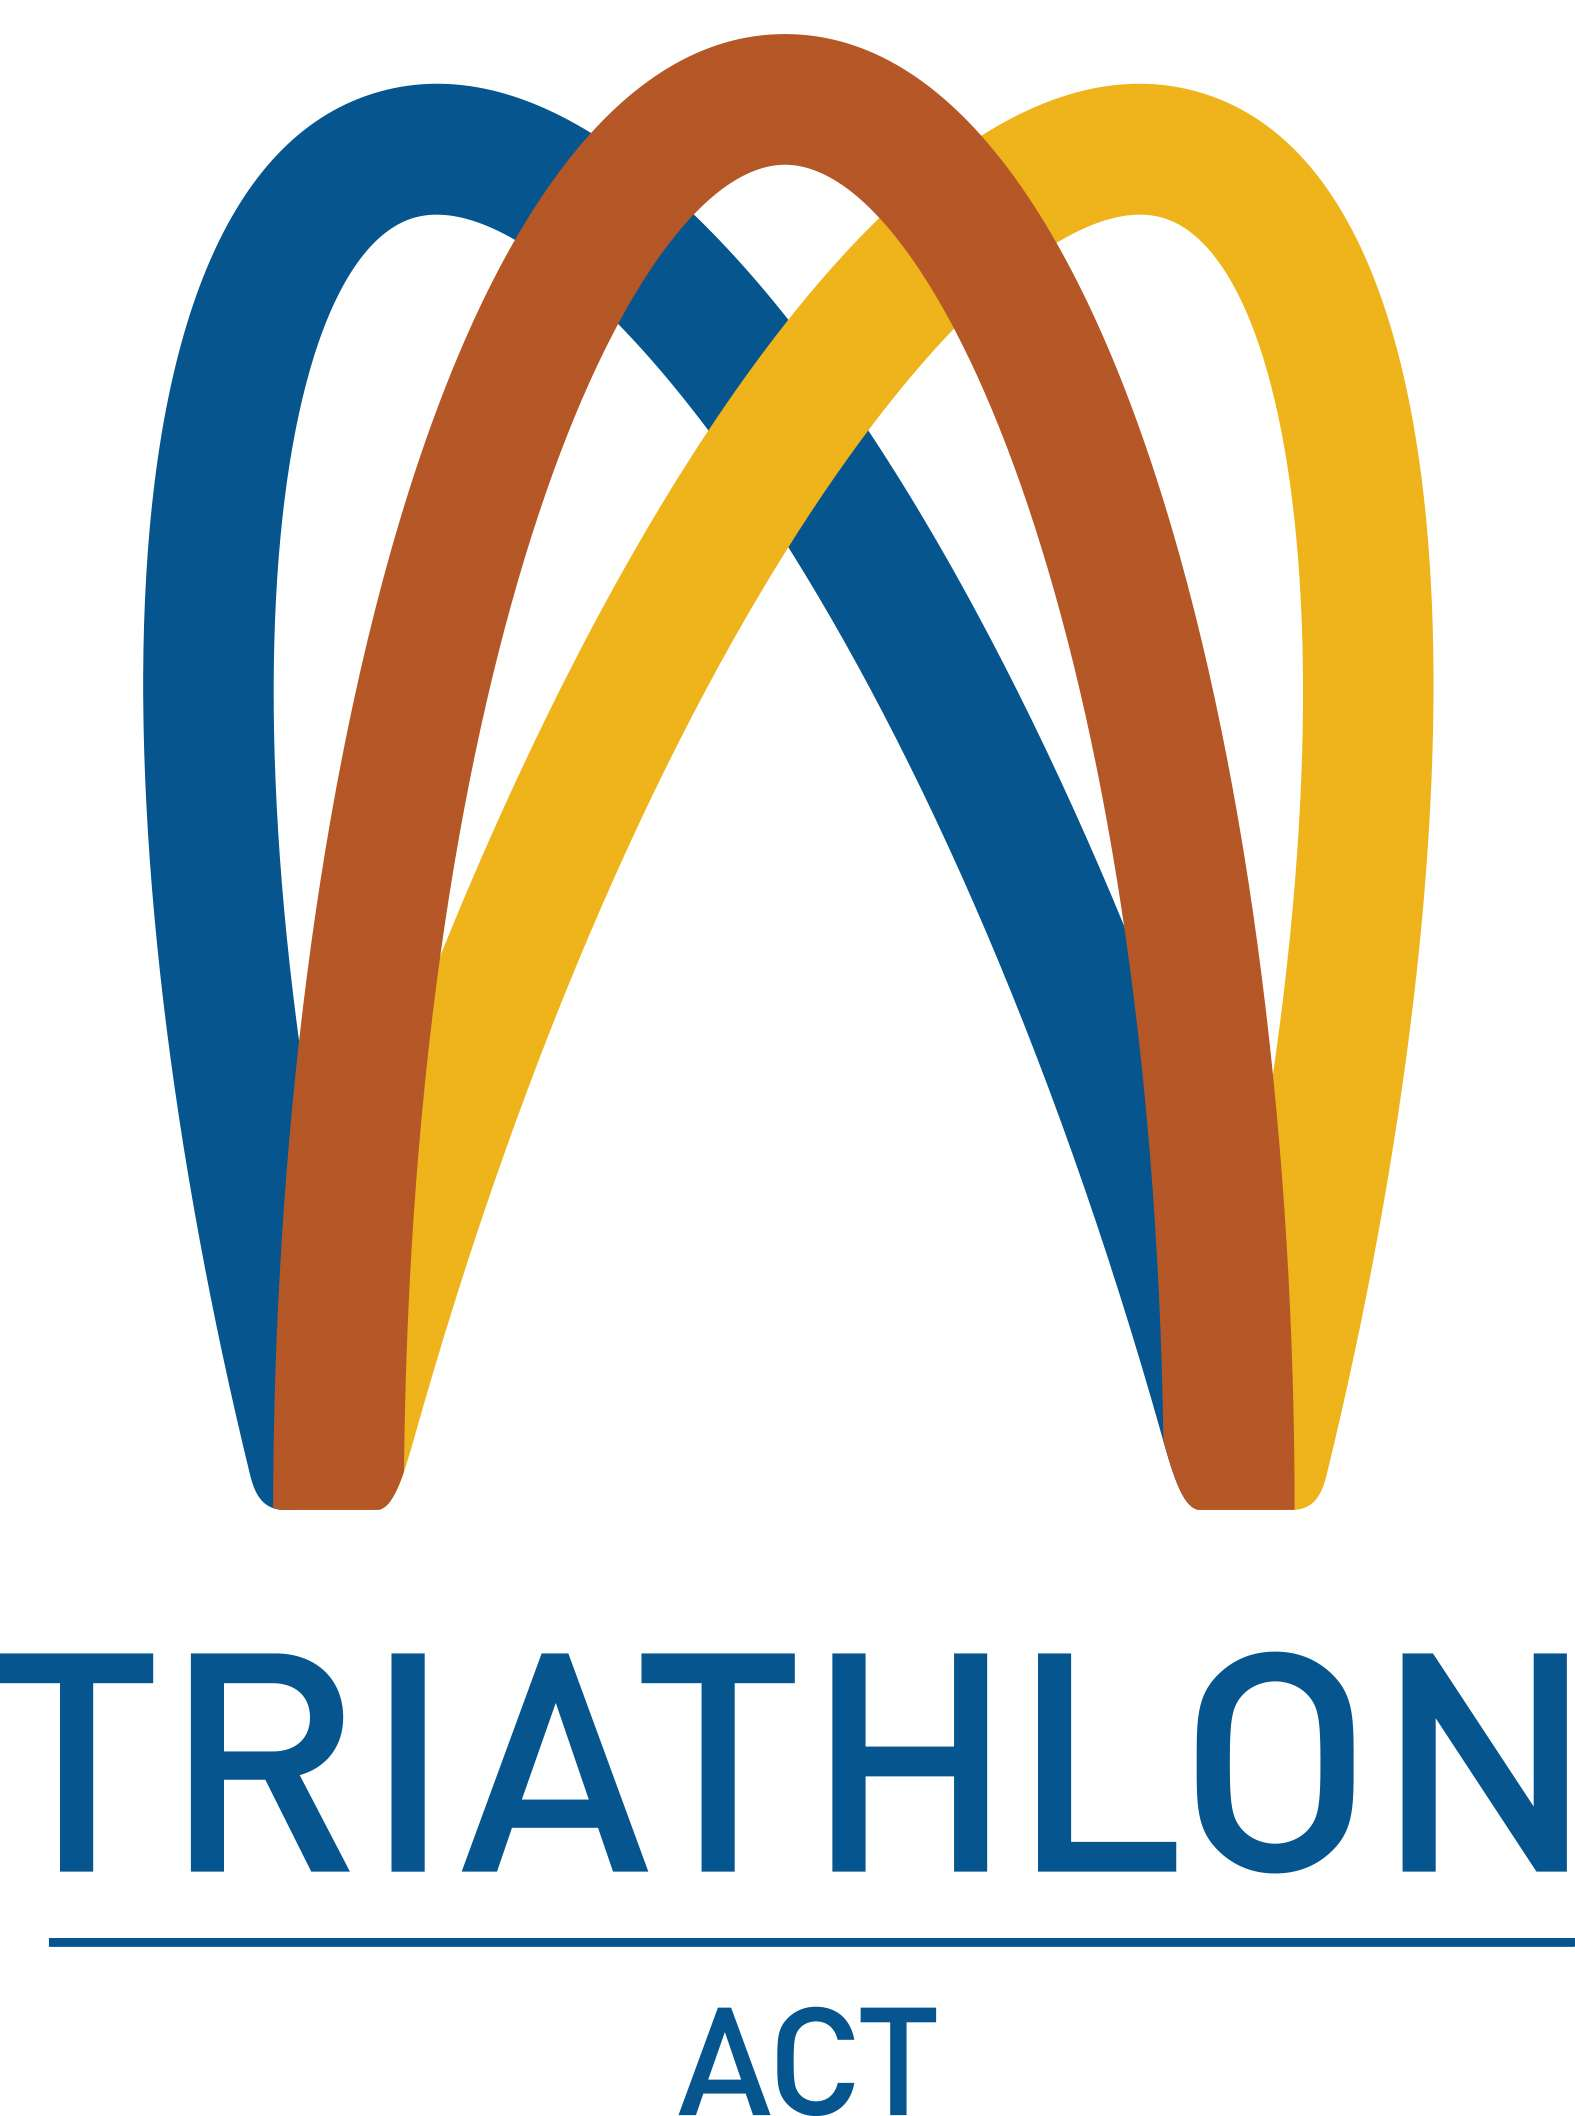 Triathlon ACT